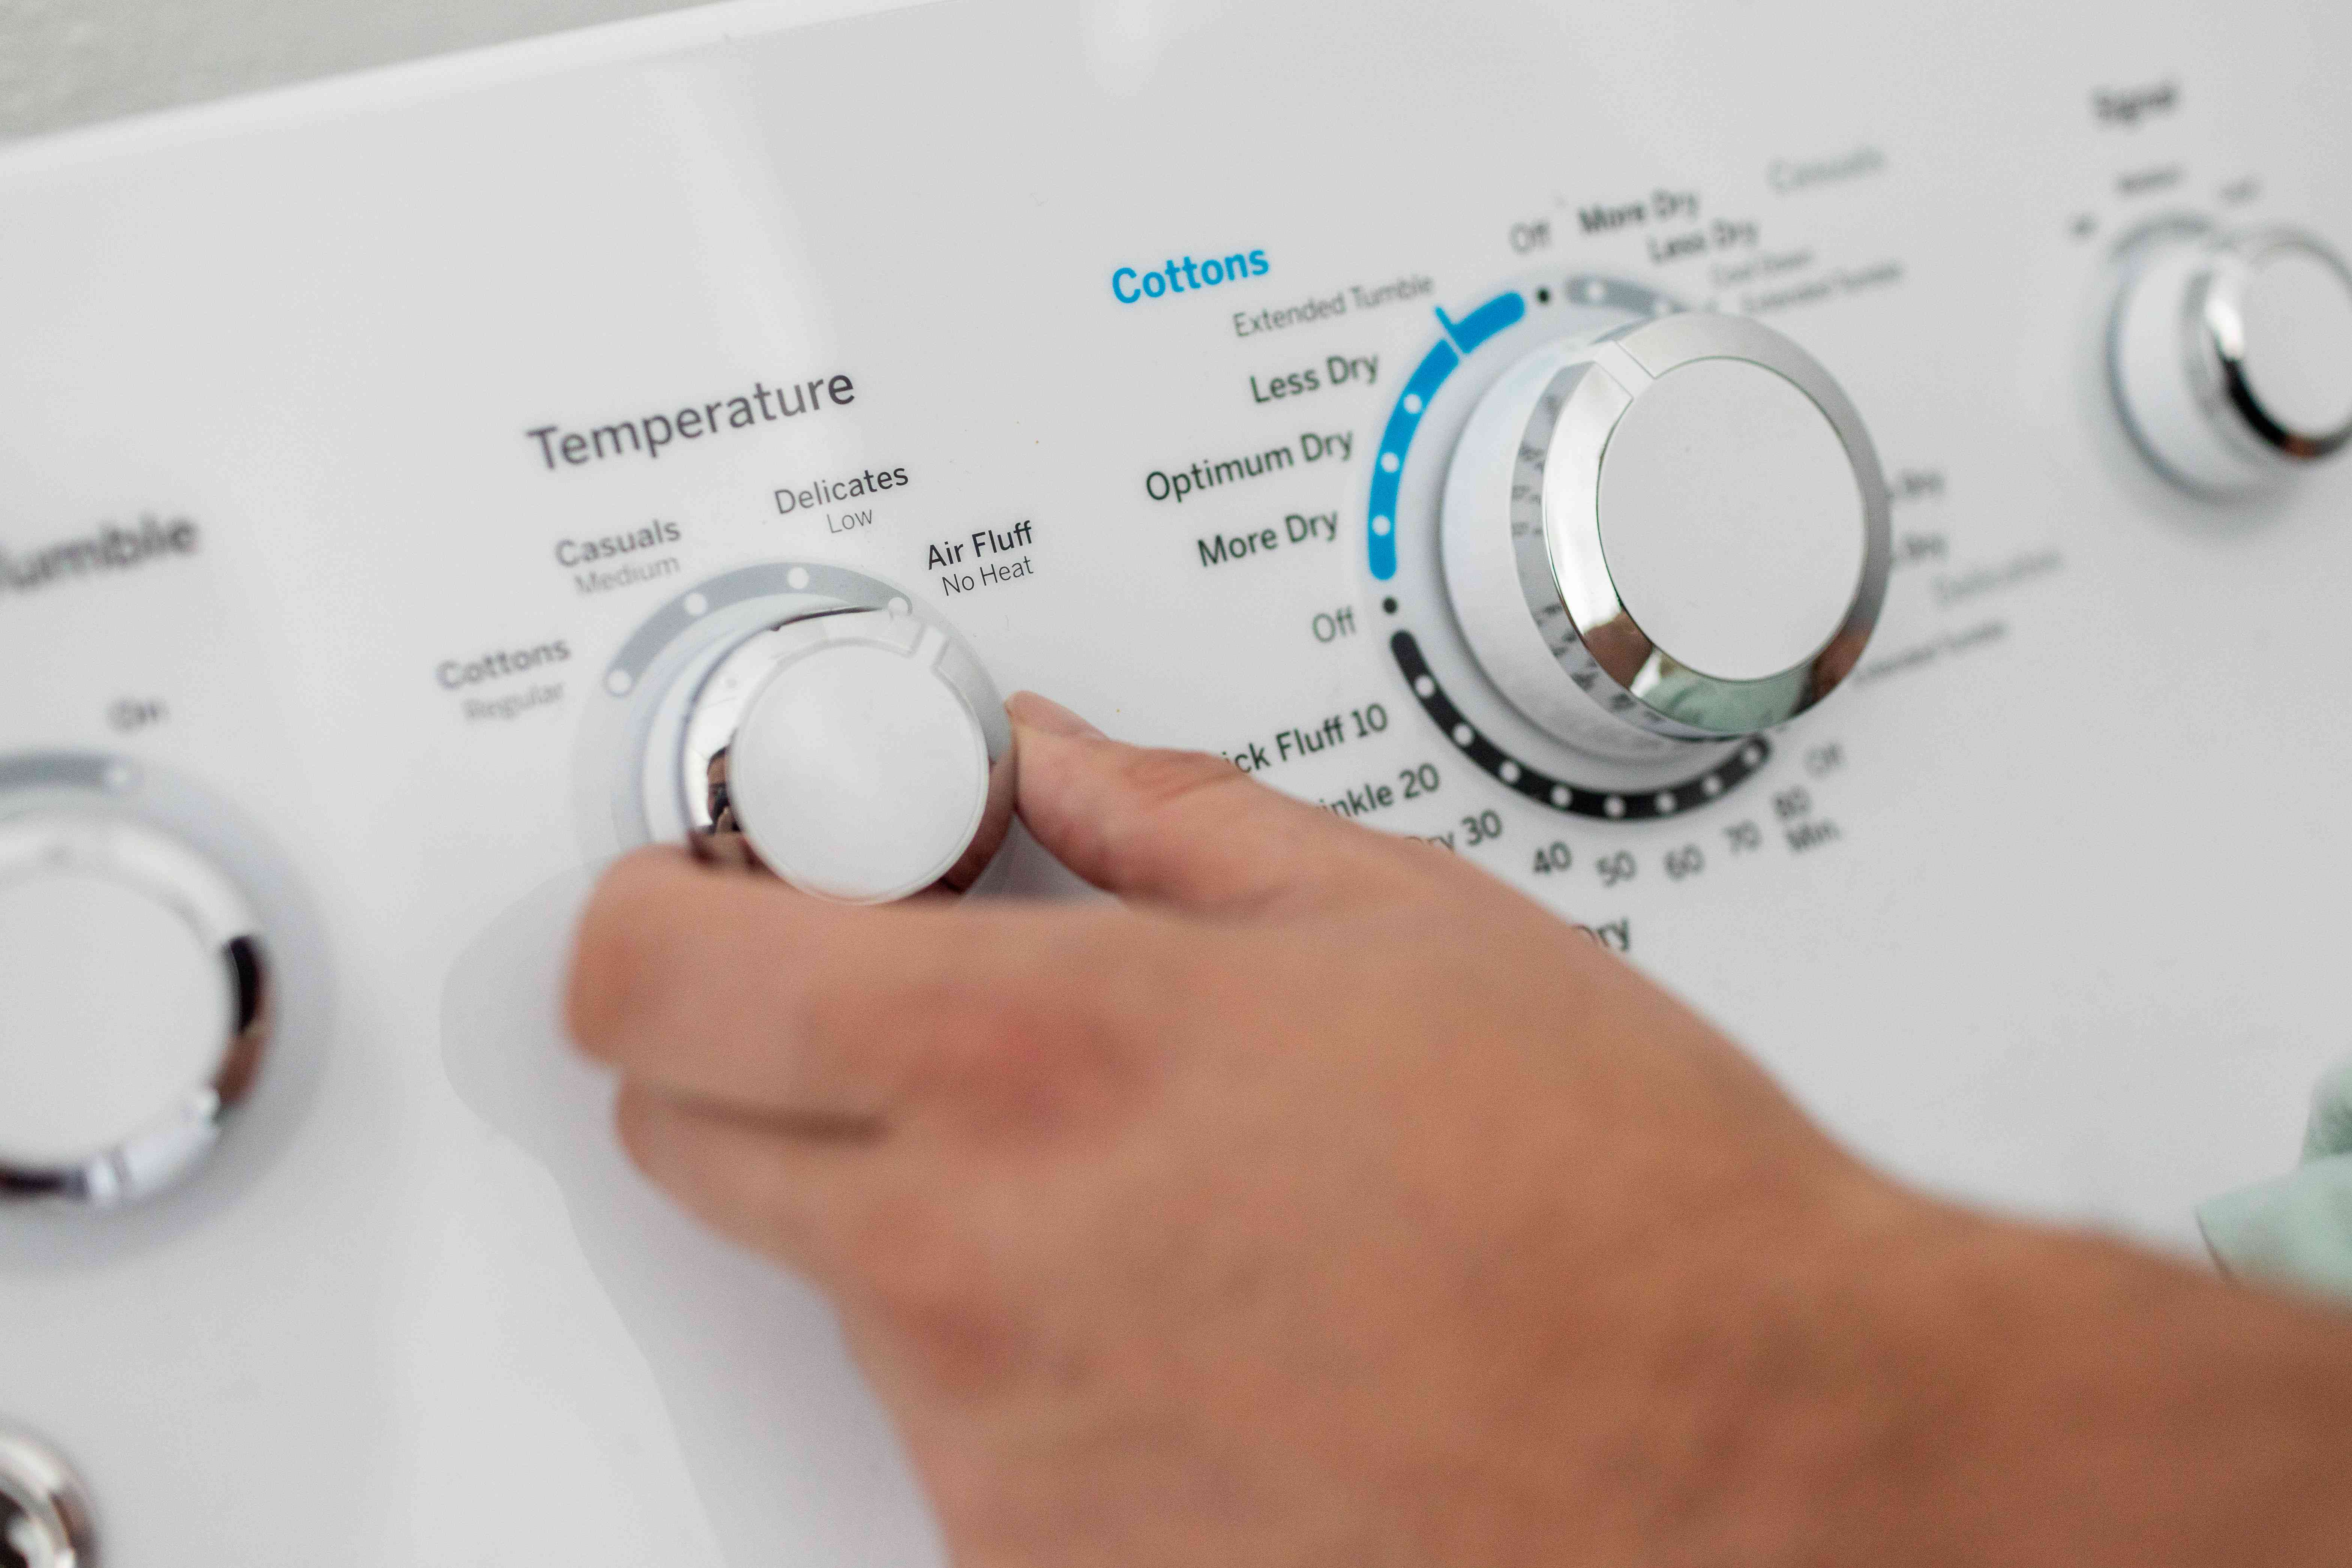 hand turns dial on clothing dryer to air fluff option for pillows